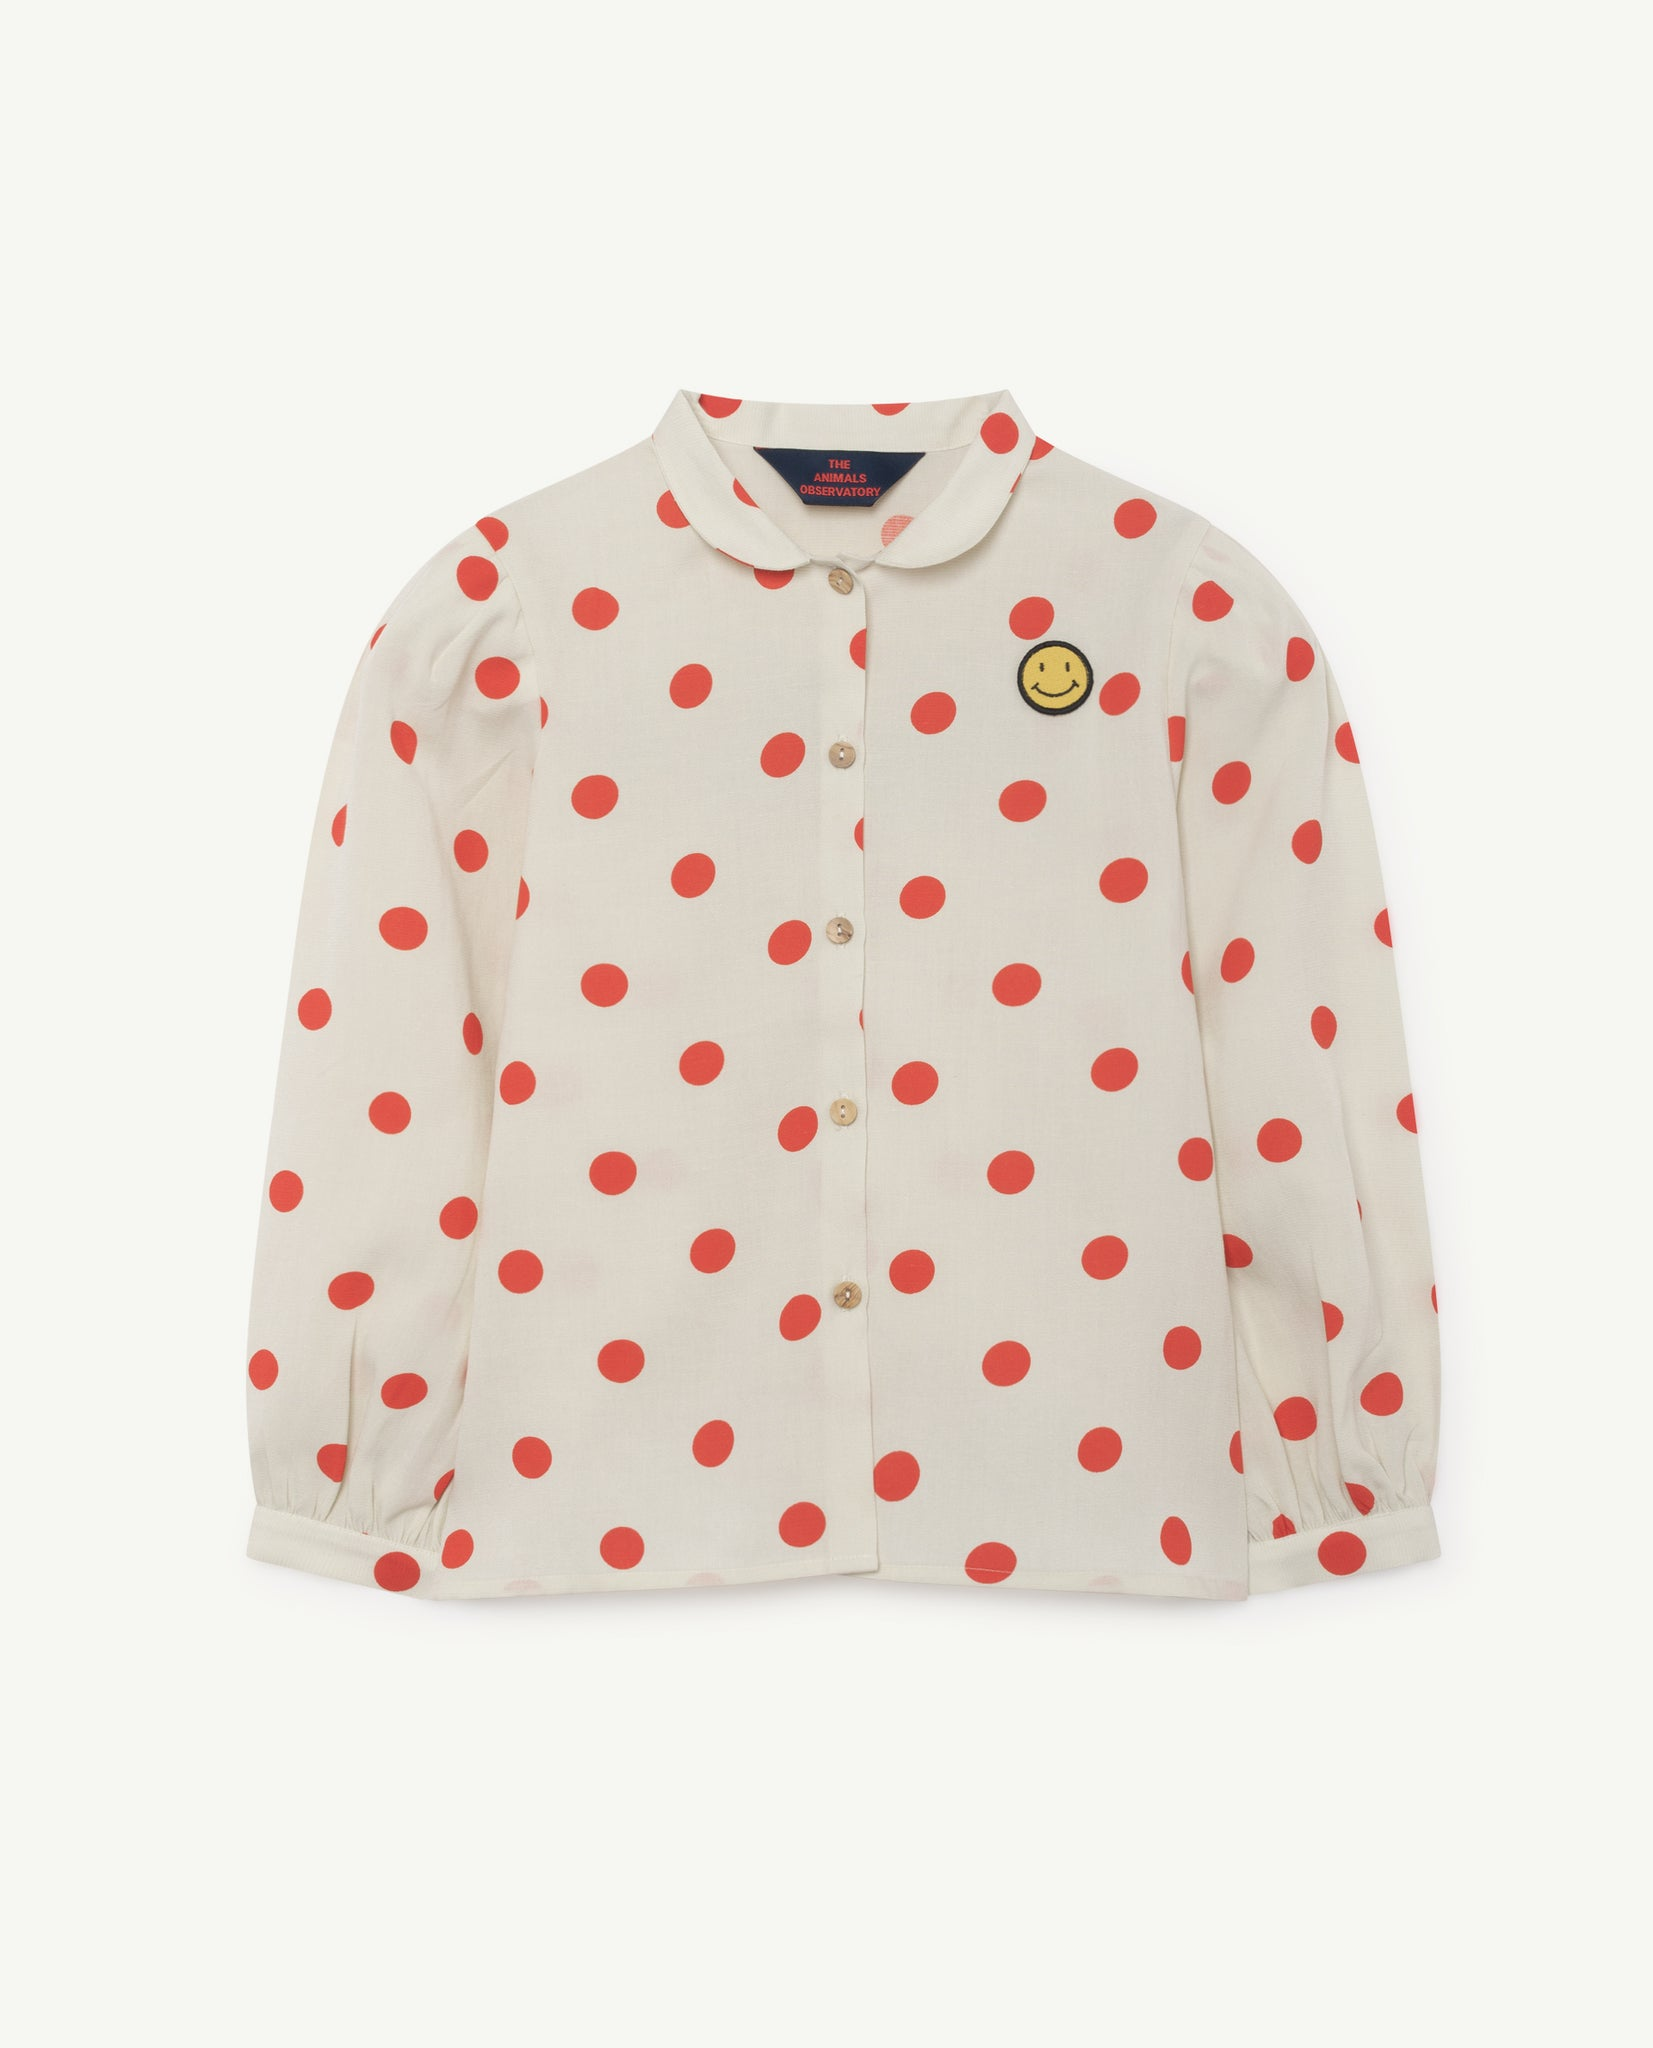 GADFLY KIDS SHIRT // WHITE POLKA DOTS